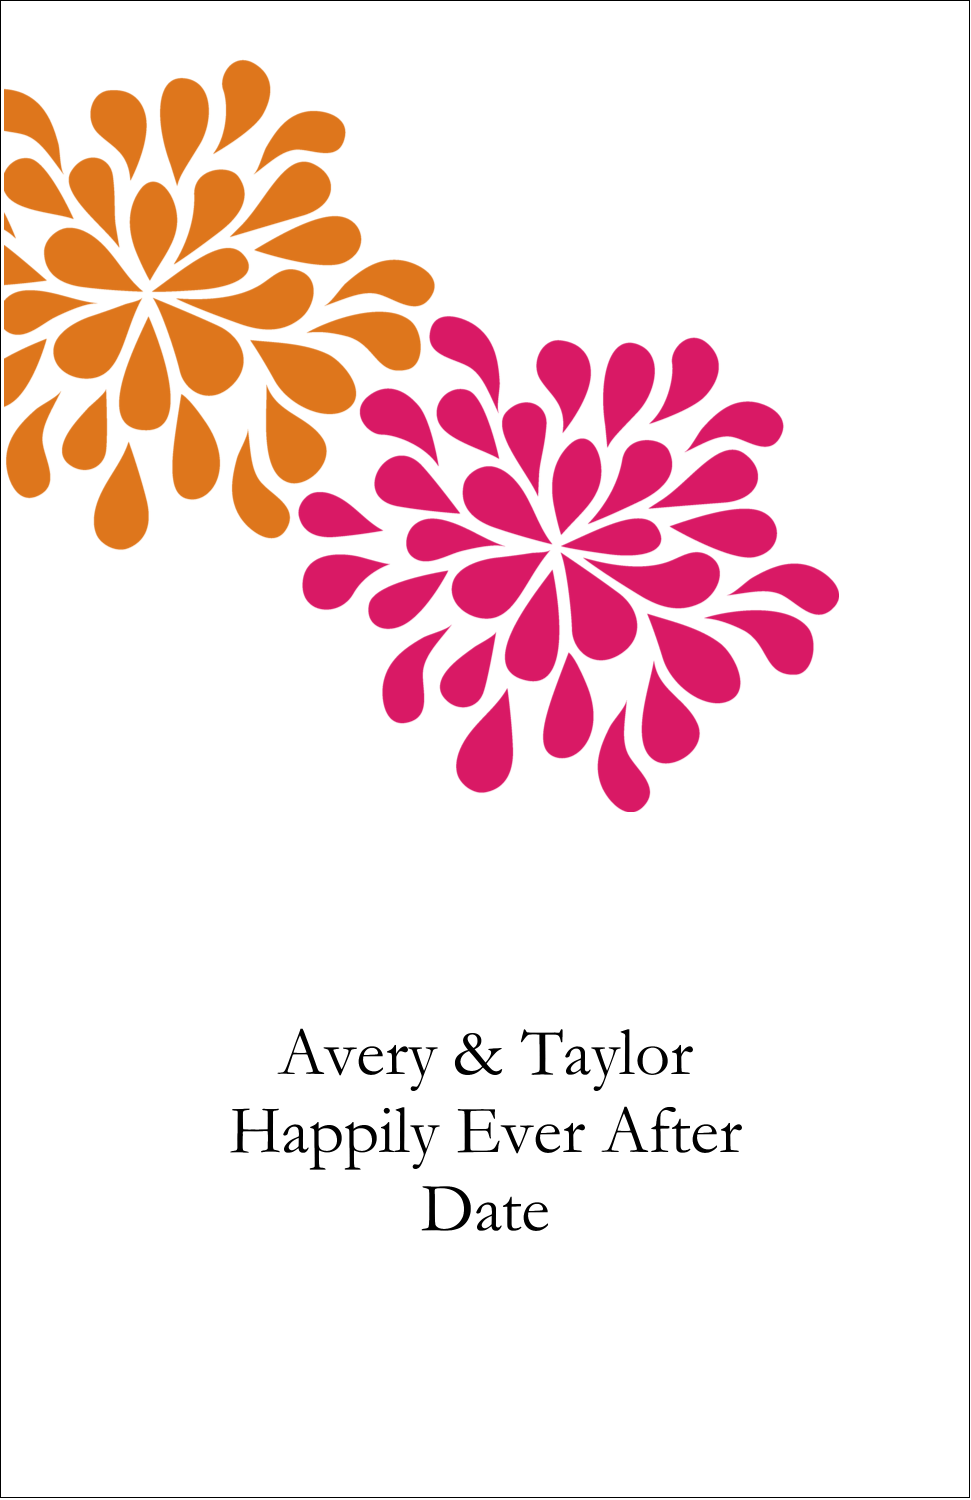 "5"" x 8½"" Half Fold Card - Bridal Shower Pink Orange"